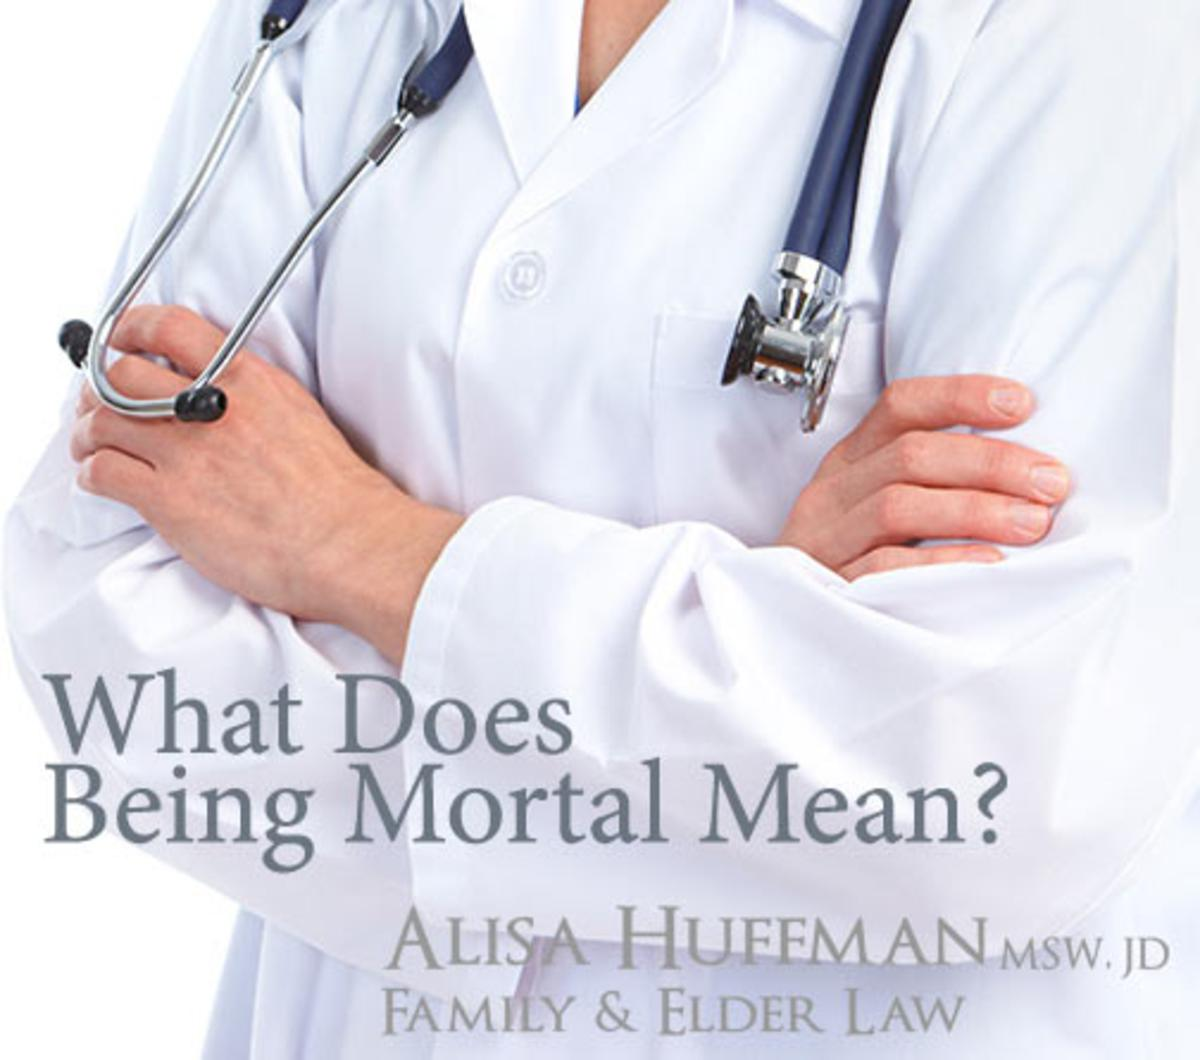 What Does Being Mortal Mean? (Part 2)